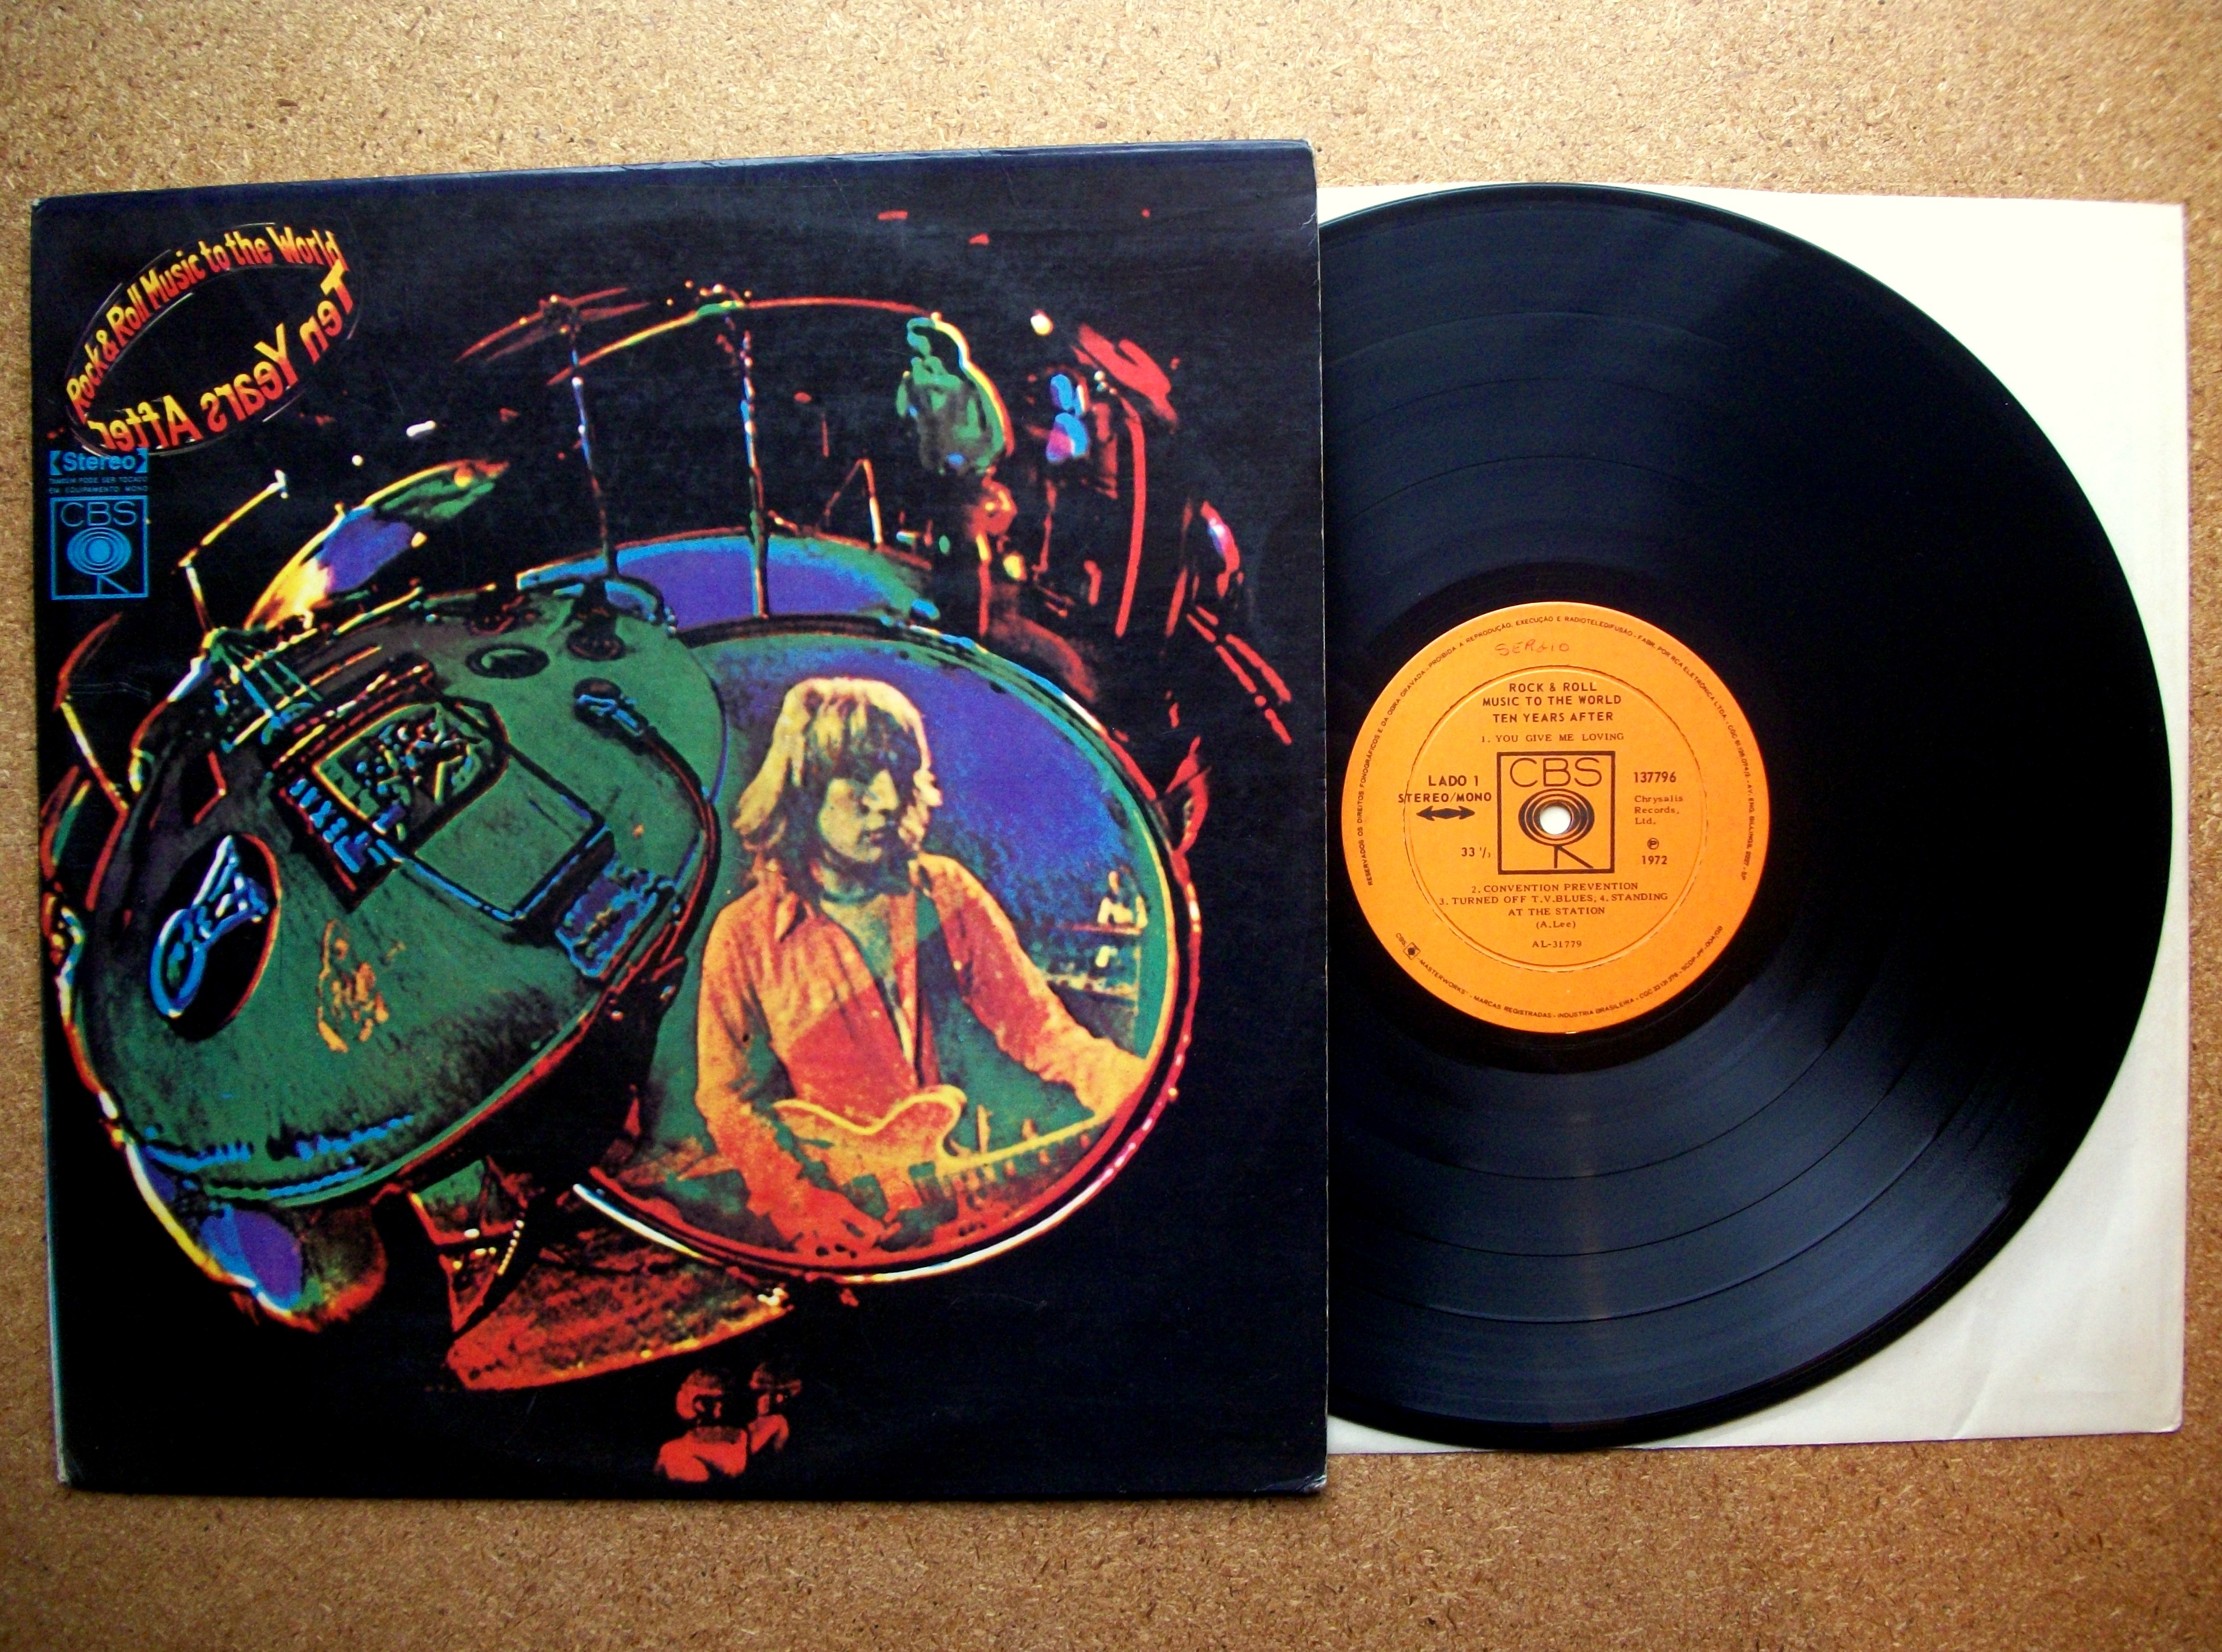 SINISTER VINYL COLLECTION: TEN YEARS AFTER – ROCK & ROLL